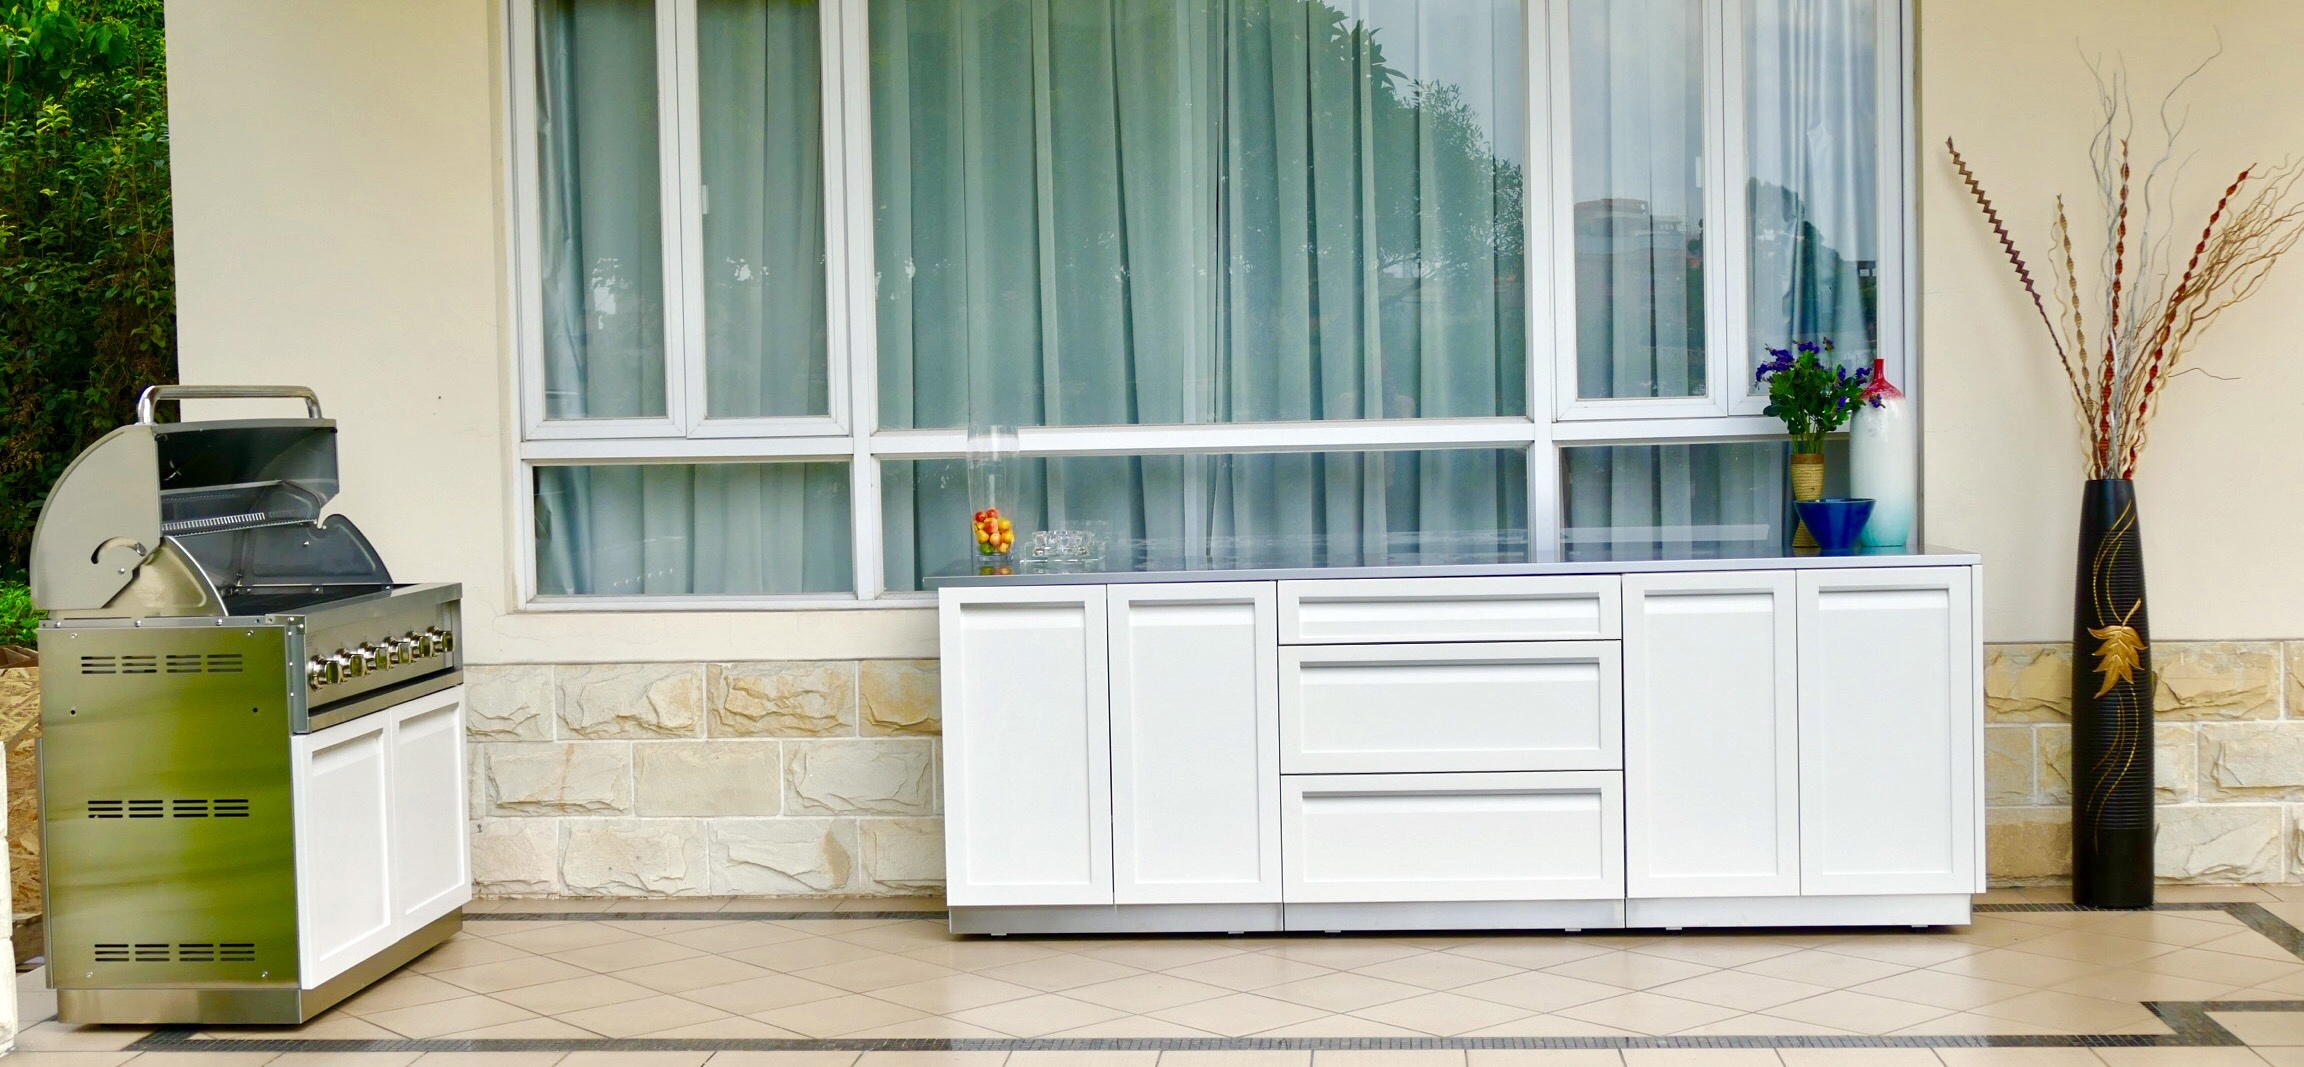 2-Piece Outdoor Kitchen Cabinet Set - W40063 - 4 Life Outdoor Inc.